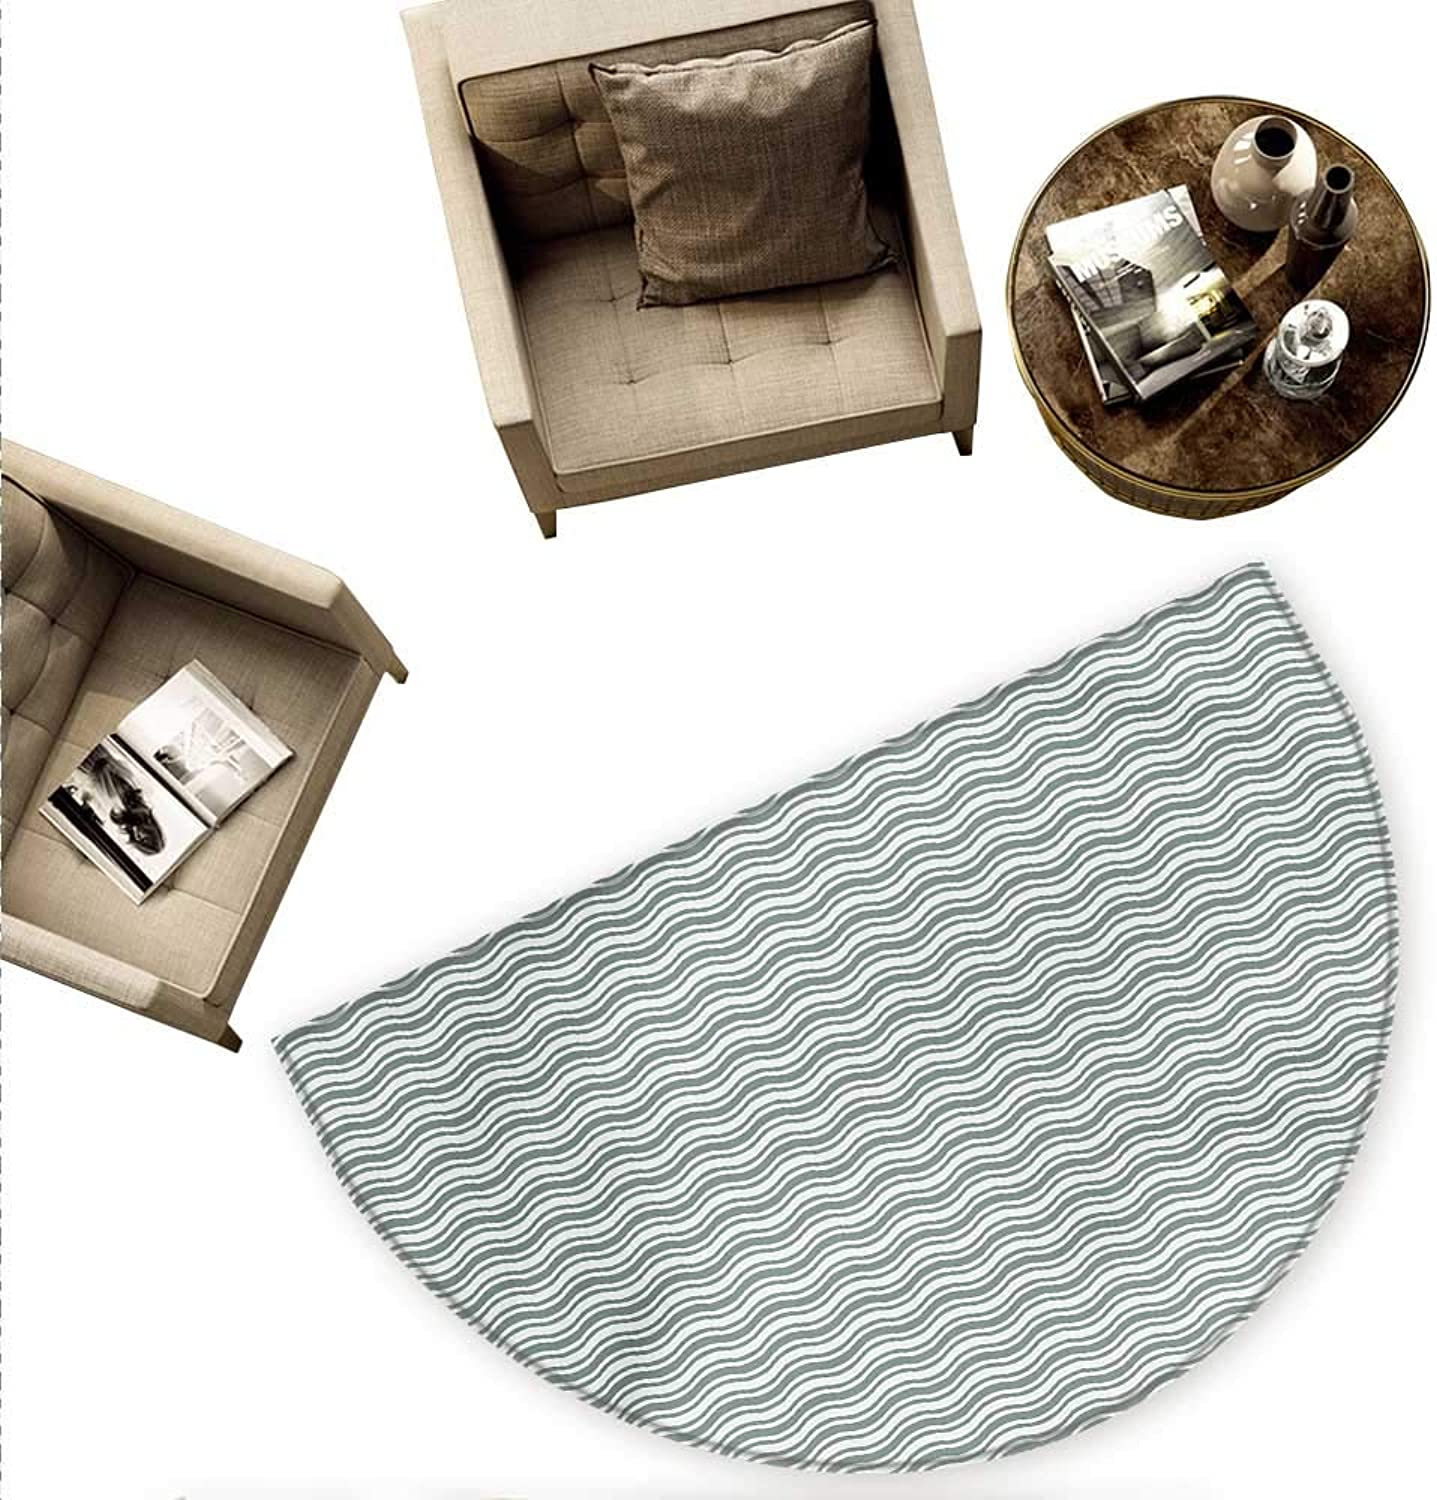 Abstract Semicircular Cushion Curvy Different Sized Lines Bold Stripes Ocean Waves Inspired Pattern Entry Door Mat H 78.7  xD 118.1  Pale Sage Green White